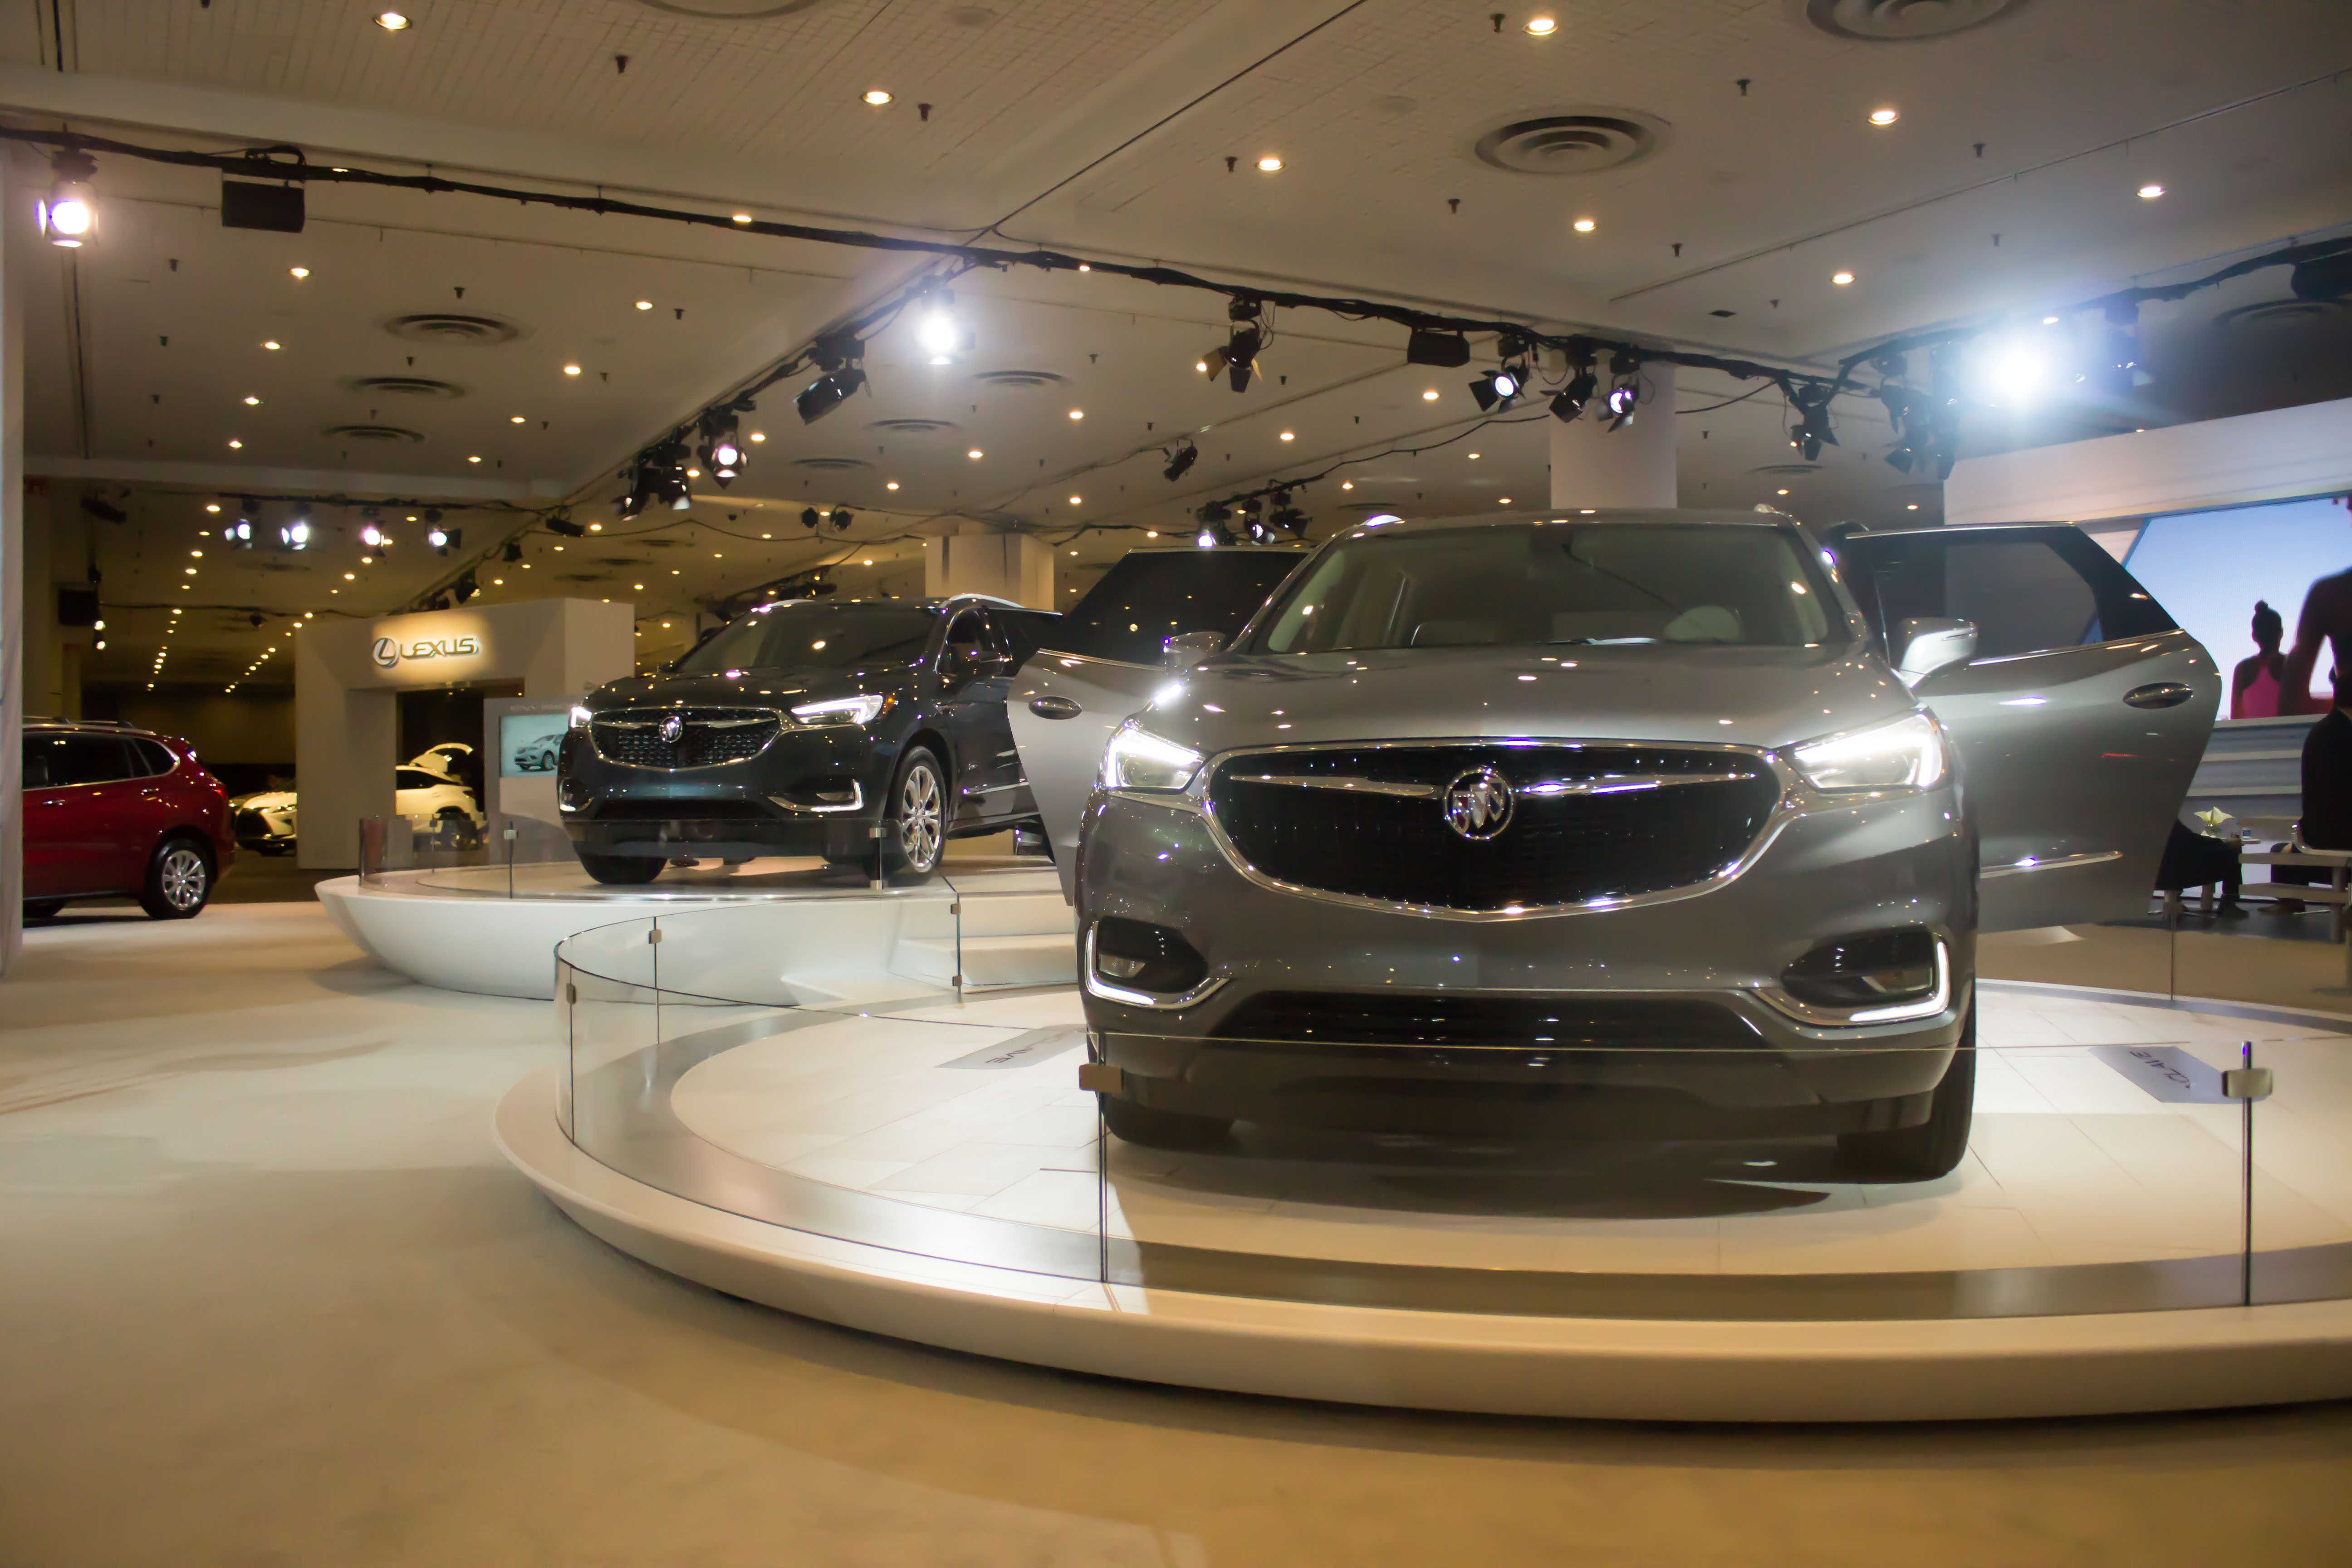 dub wheels in enclave first youtube world s see watch must enclaves buick hd on